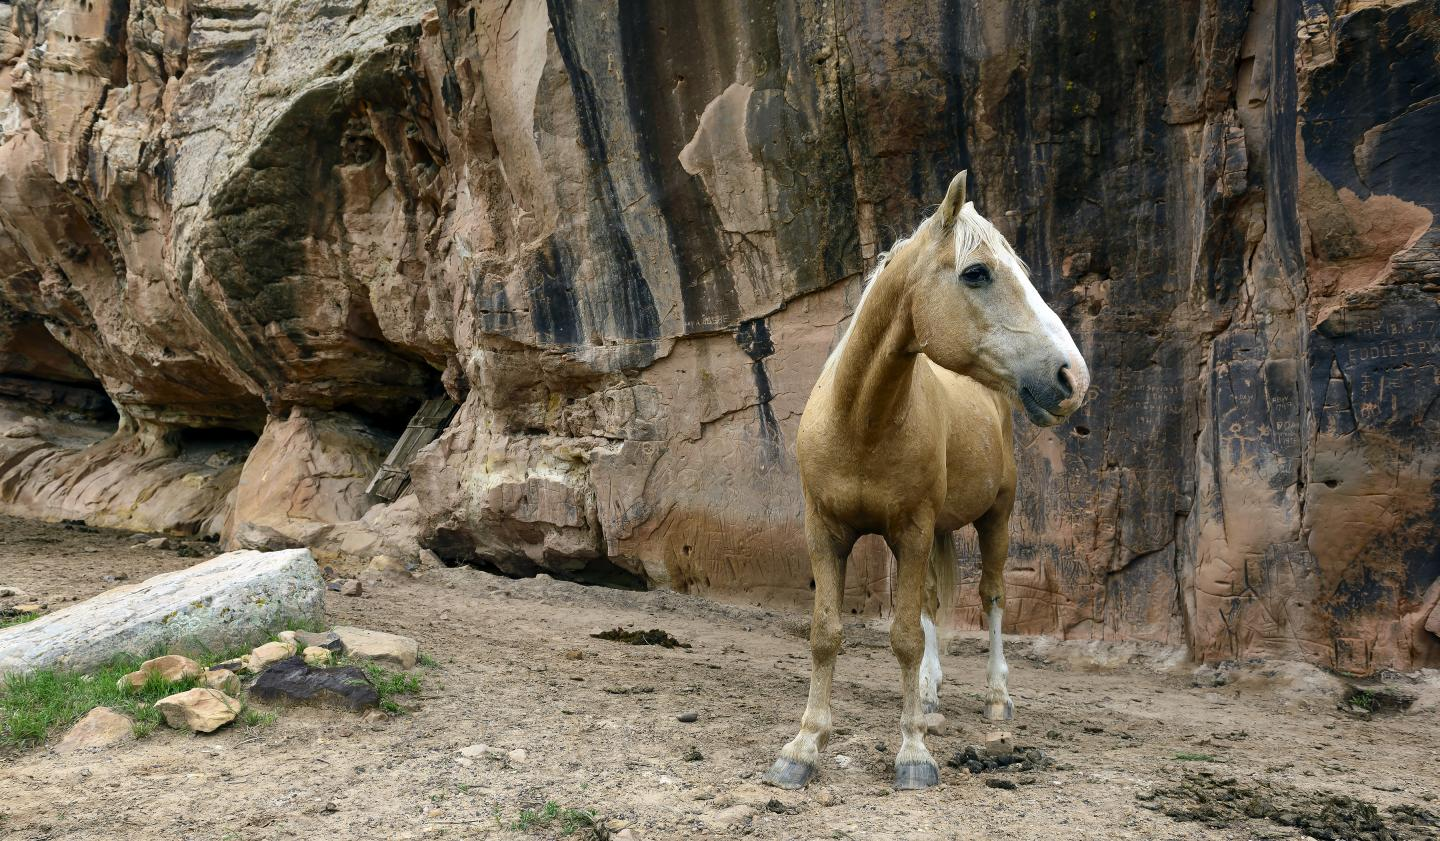 Wild Horses - South Dakota - Places to See: What to See